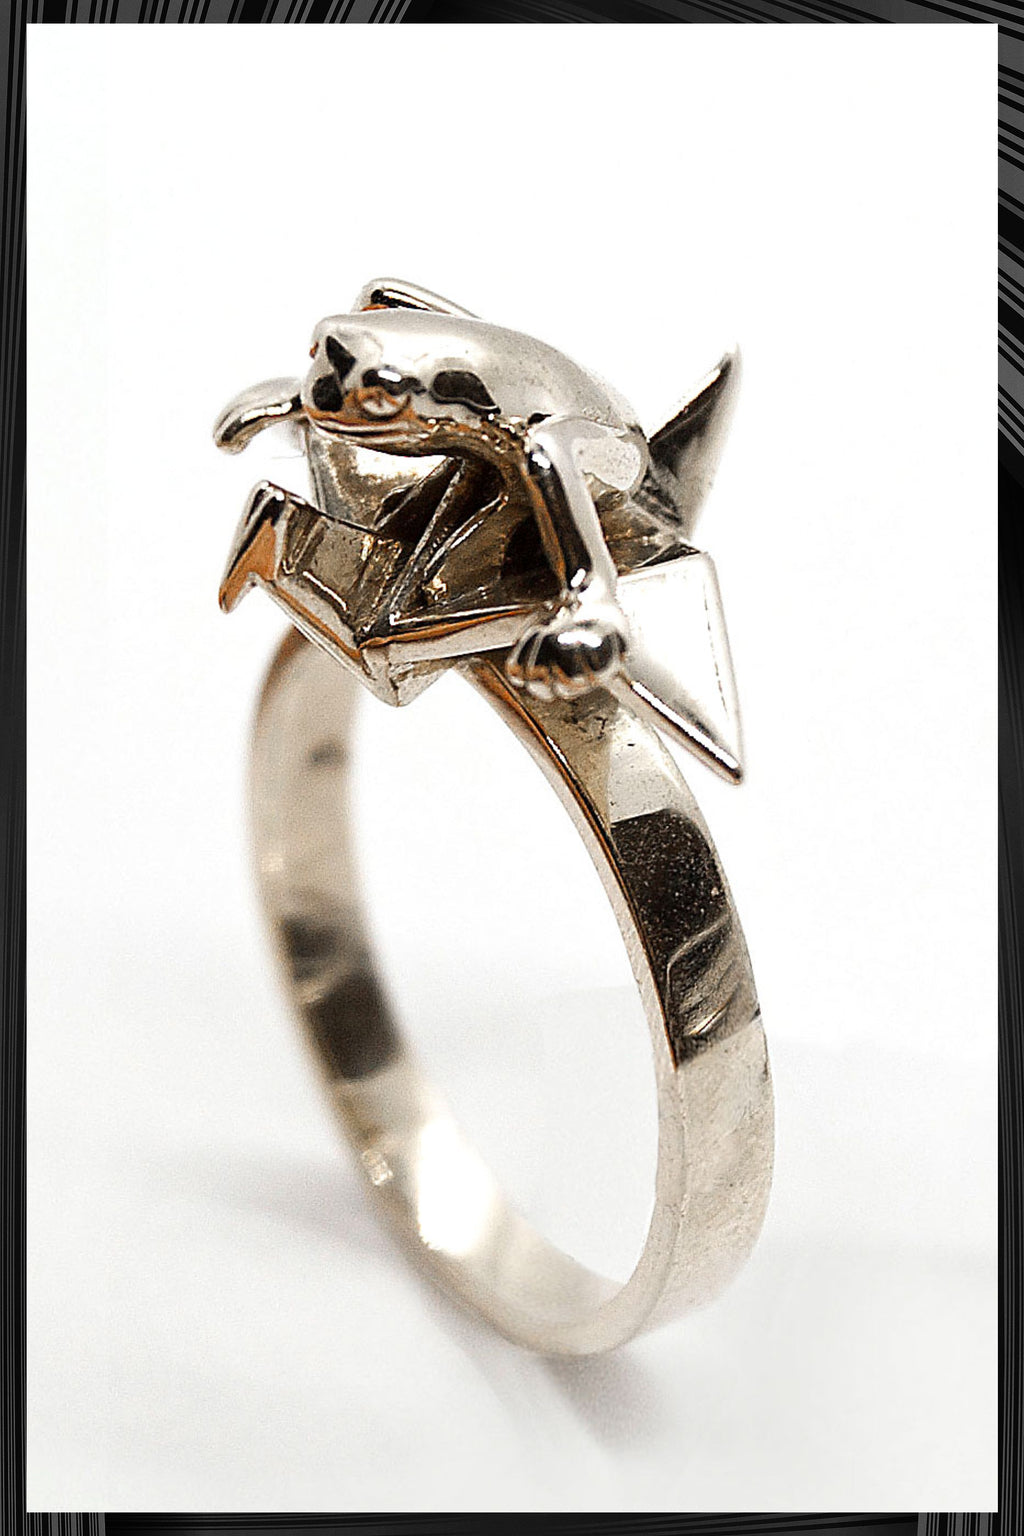 Origami Crane Frog Ring